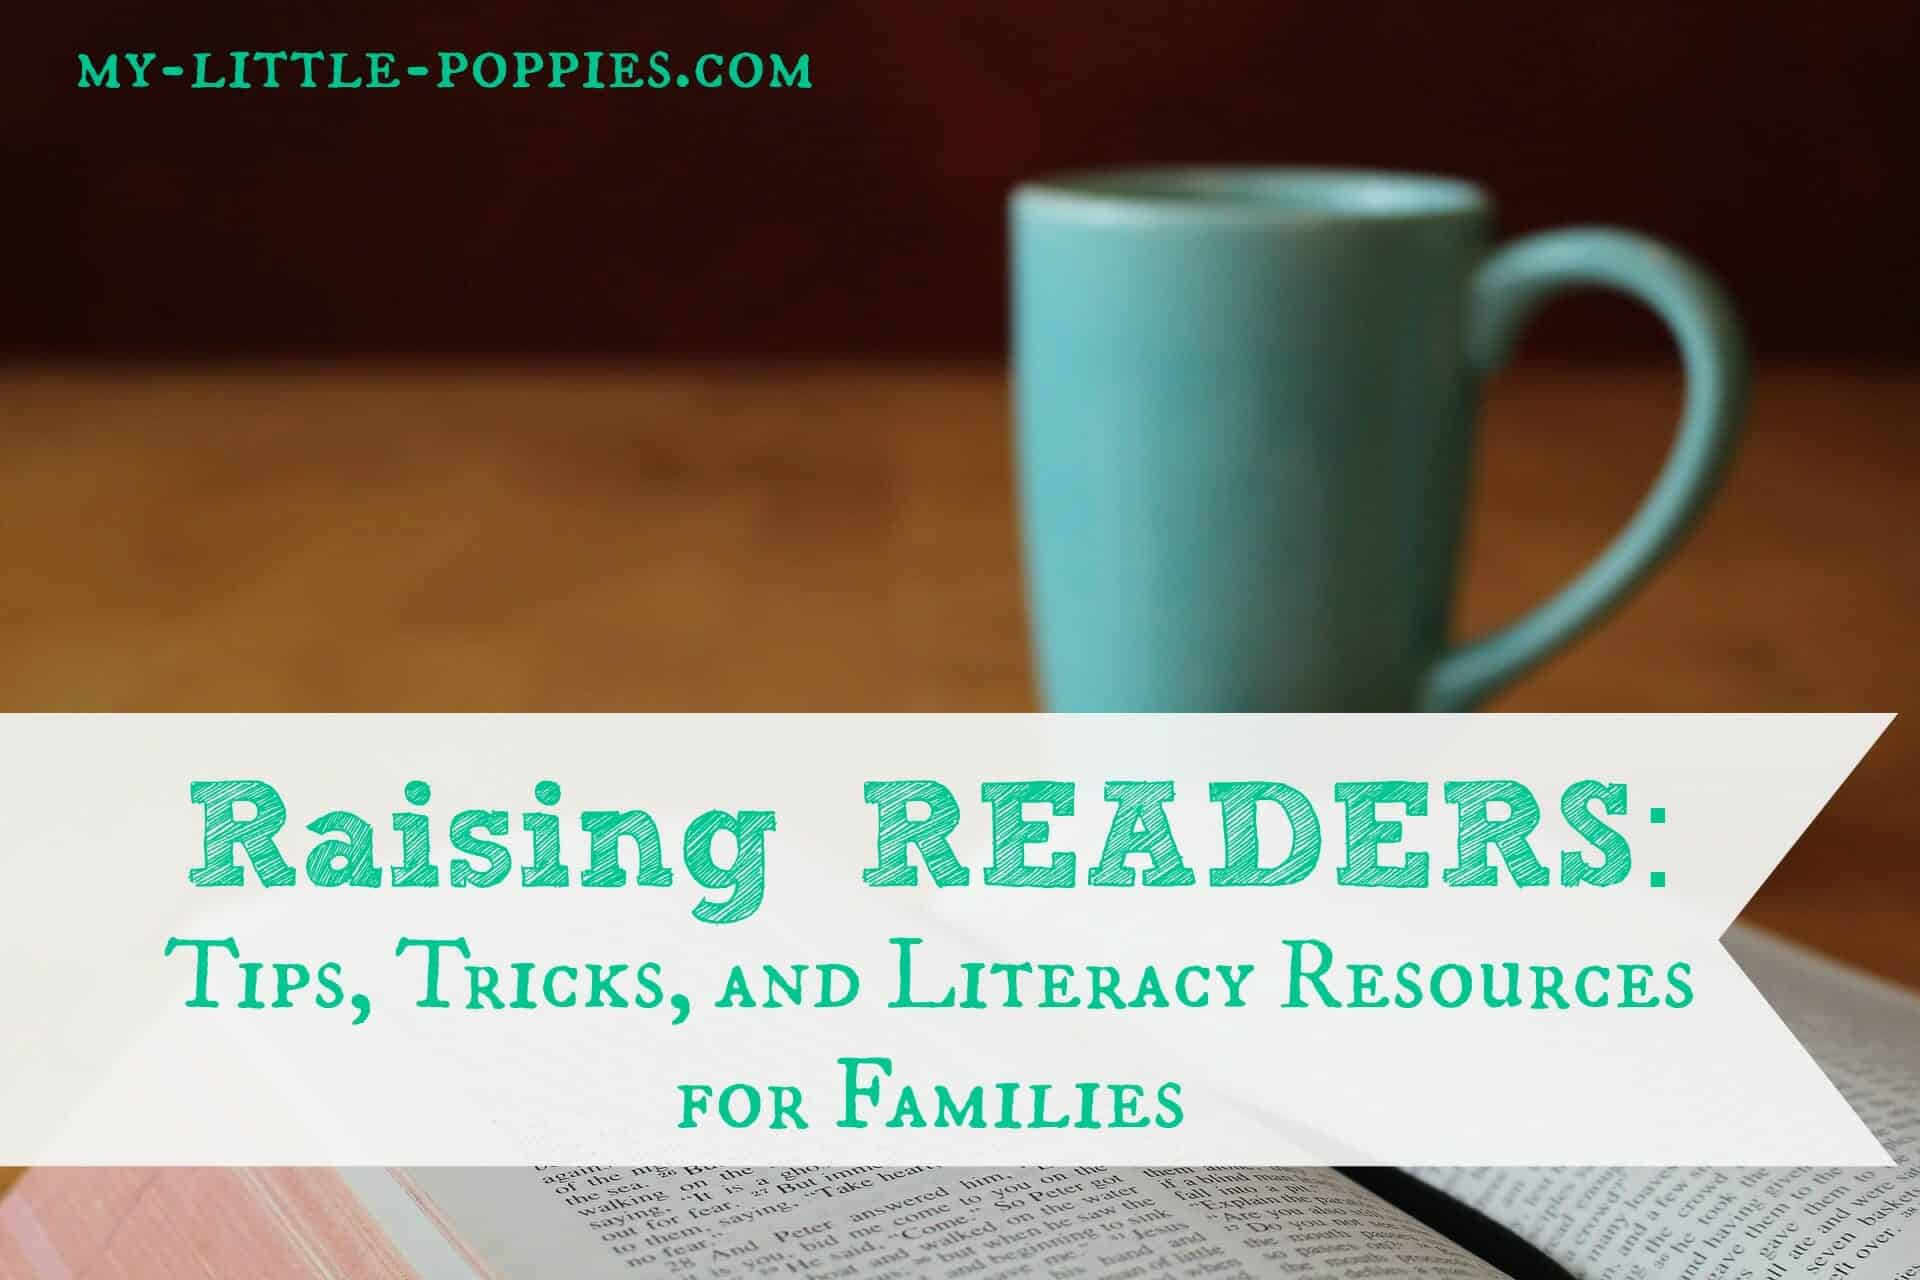 Raising Readers Tips, Tricks, Games, and Literacy Resources for Smart Families, 20+ of the best fantastic reading and language arts board games for your family, homeschool, educational games, play based learning, literacy games, vocabulary games, reading games, language games, speech and language games, homeschooler, homeschooling, parenting, resources, hands-on learning, experiential learning, board games, tabletop games